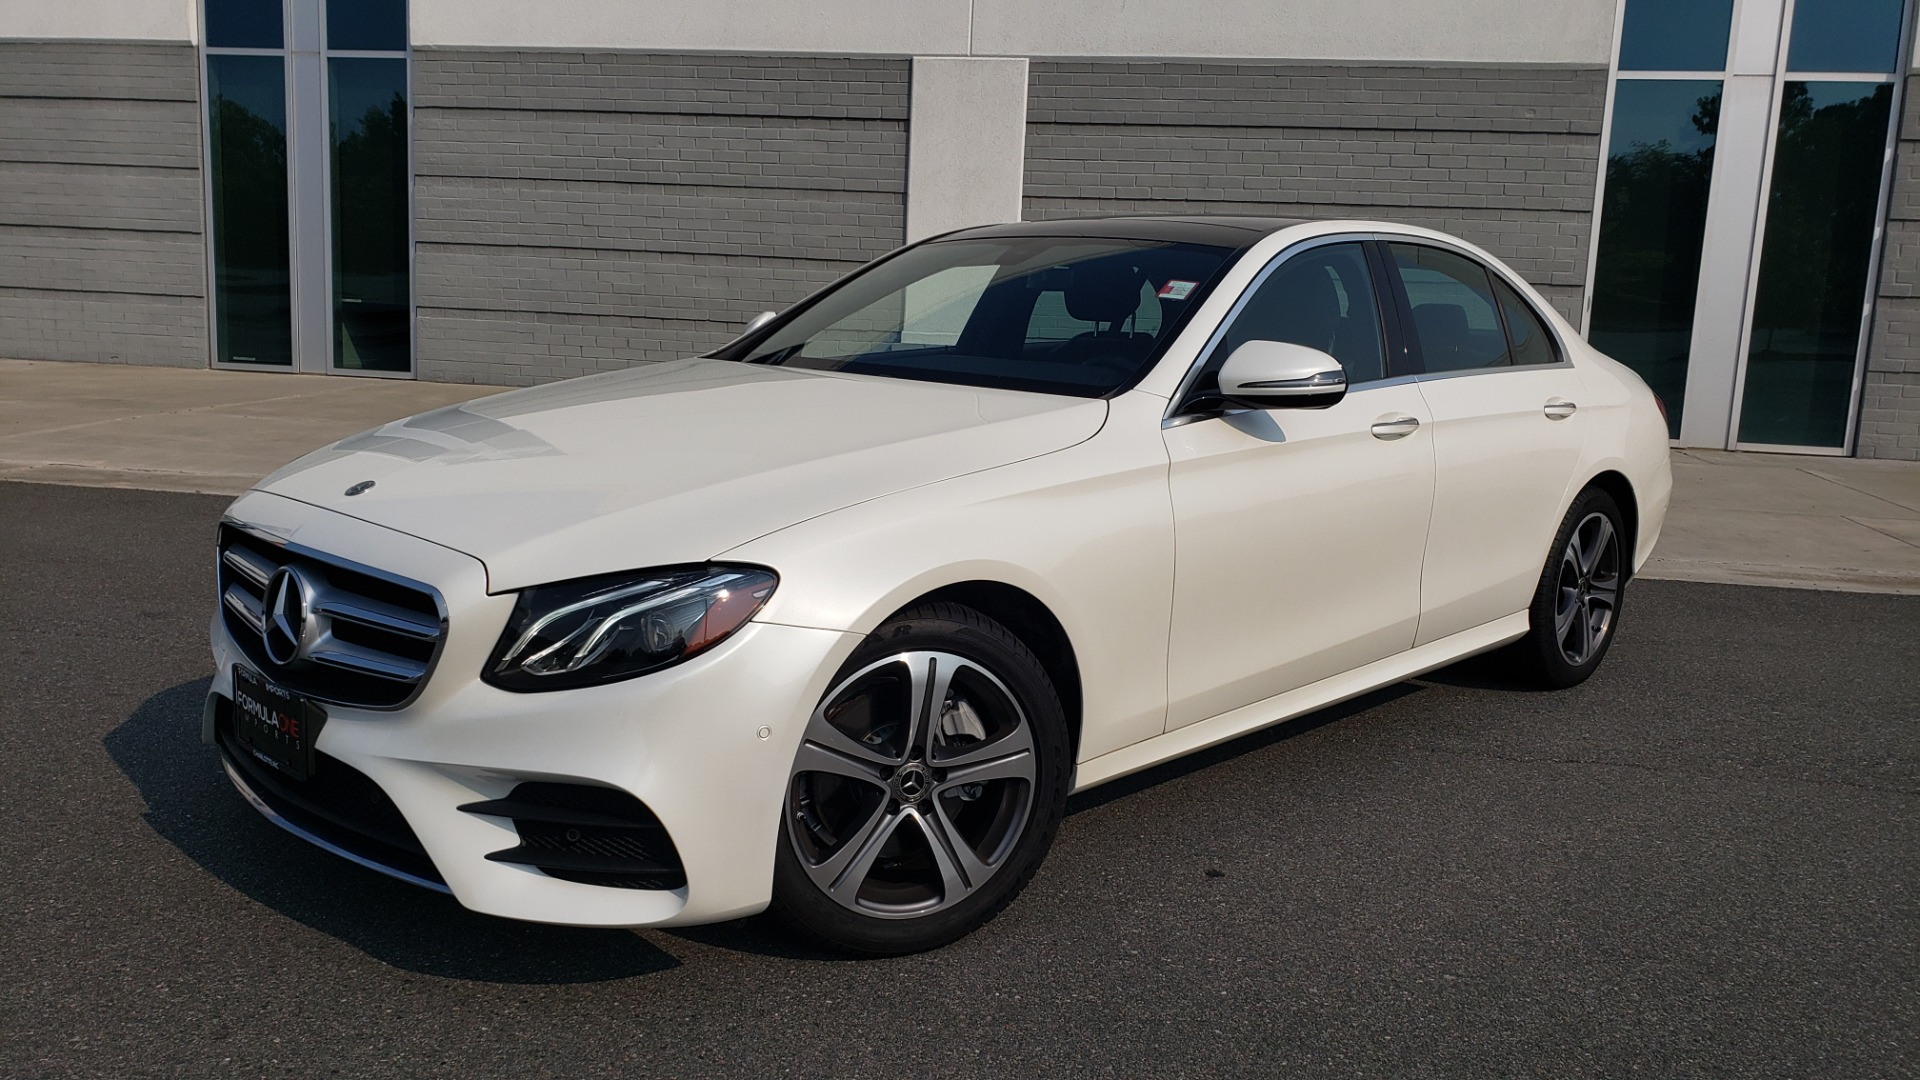 Used 2018 Mercedes-Benz E-CLASS E 300 4MATIC / PREMIUM / NAV / PANO-ROOF / BURMESTER / REARVIEW for sale $41,995 at Formula Imports in Charlotte NC 28227 1